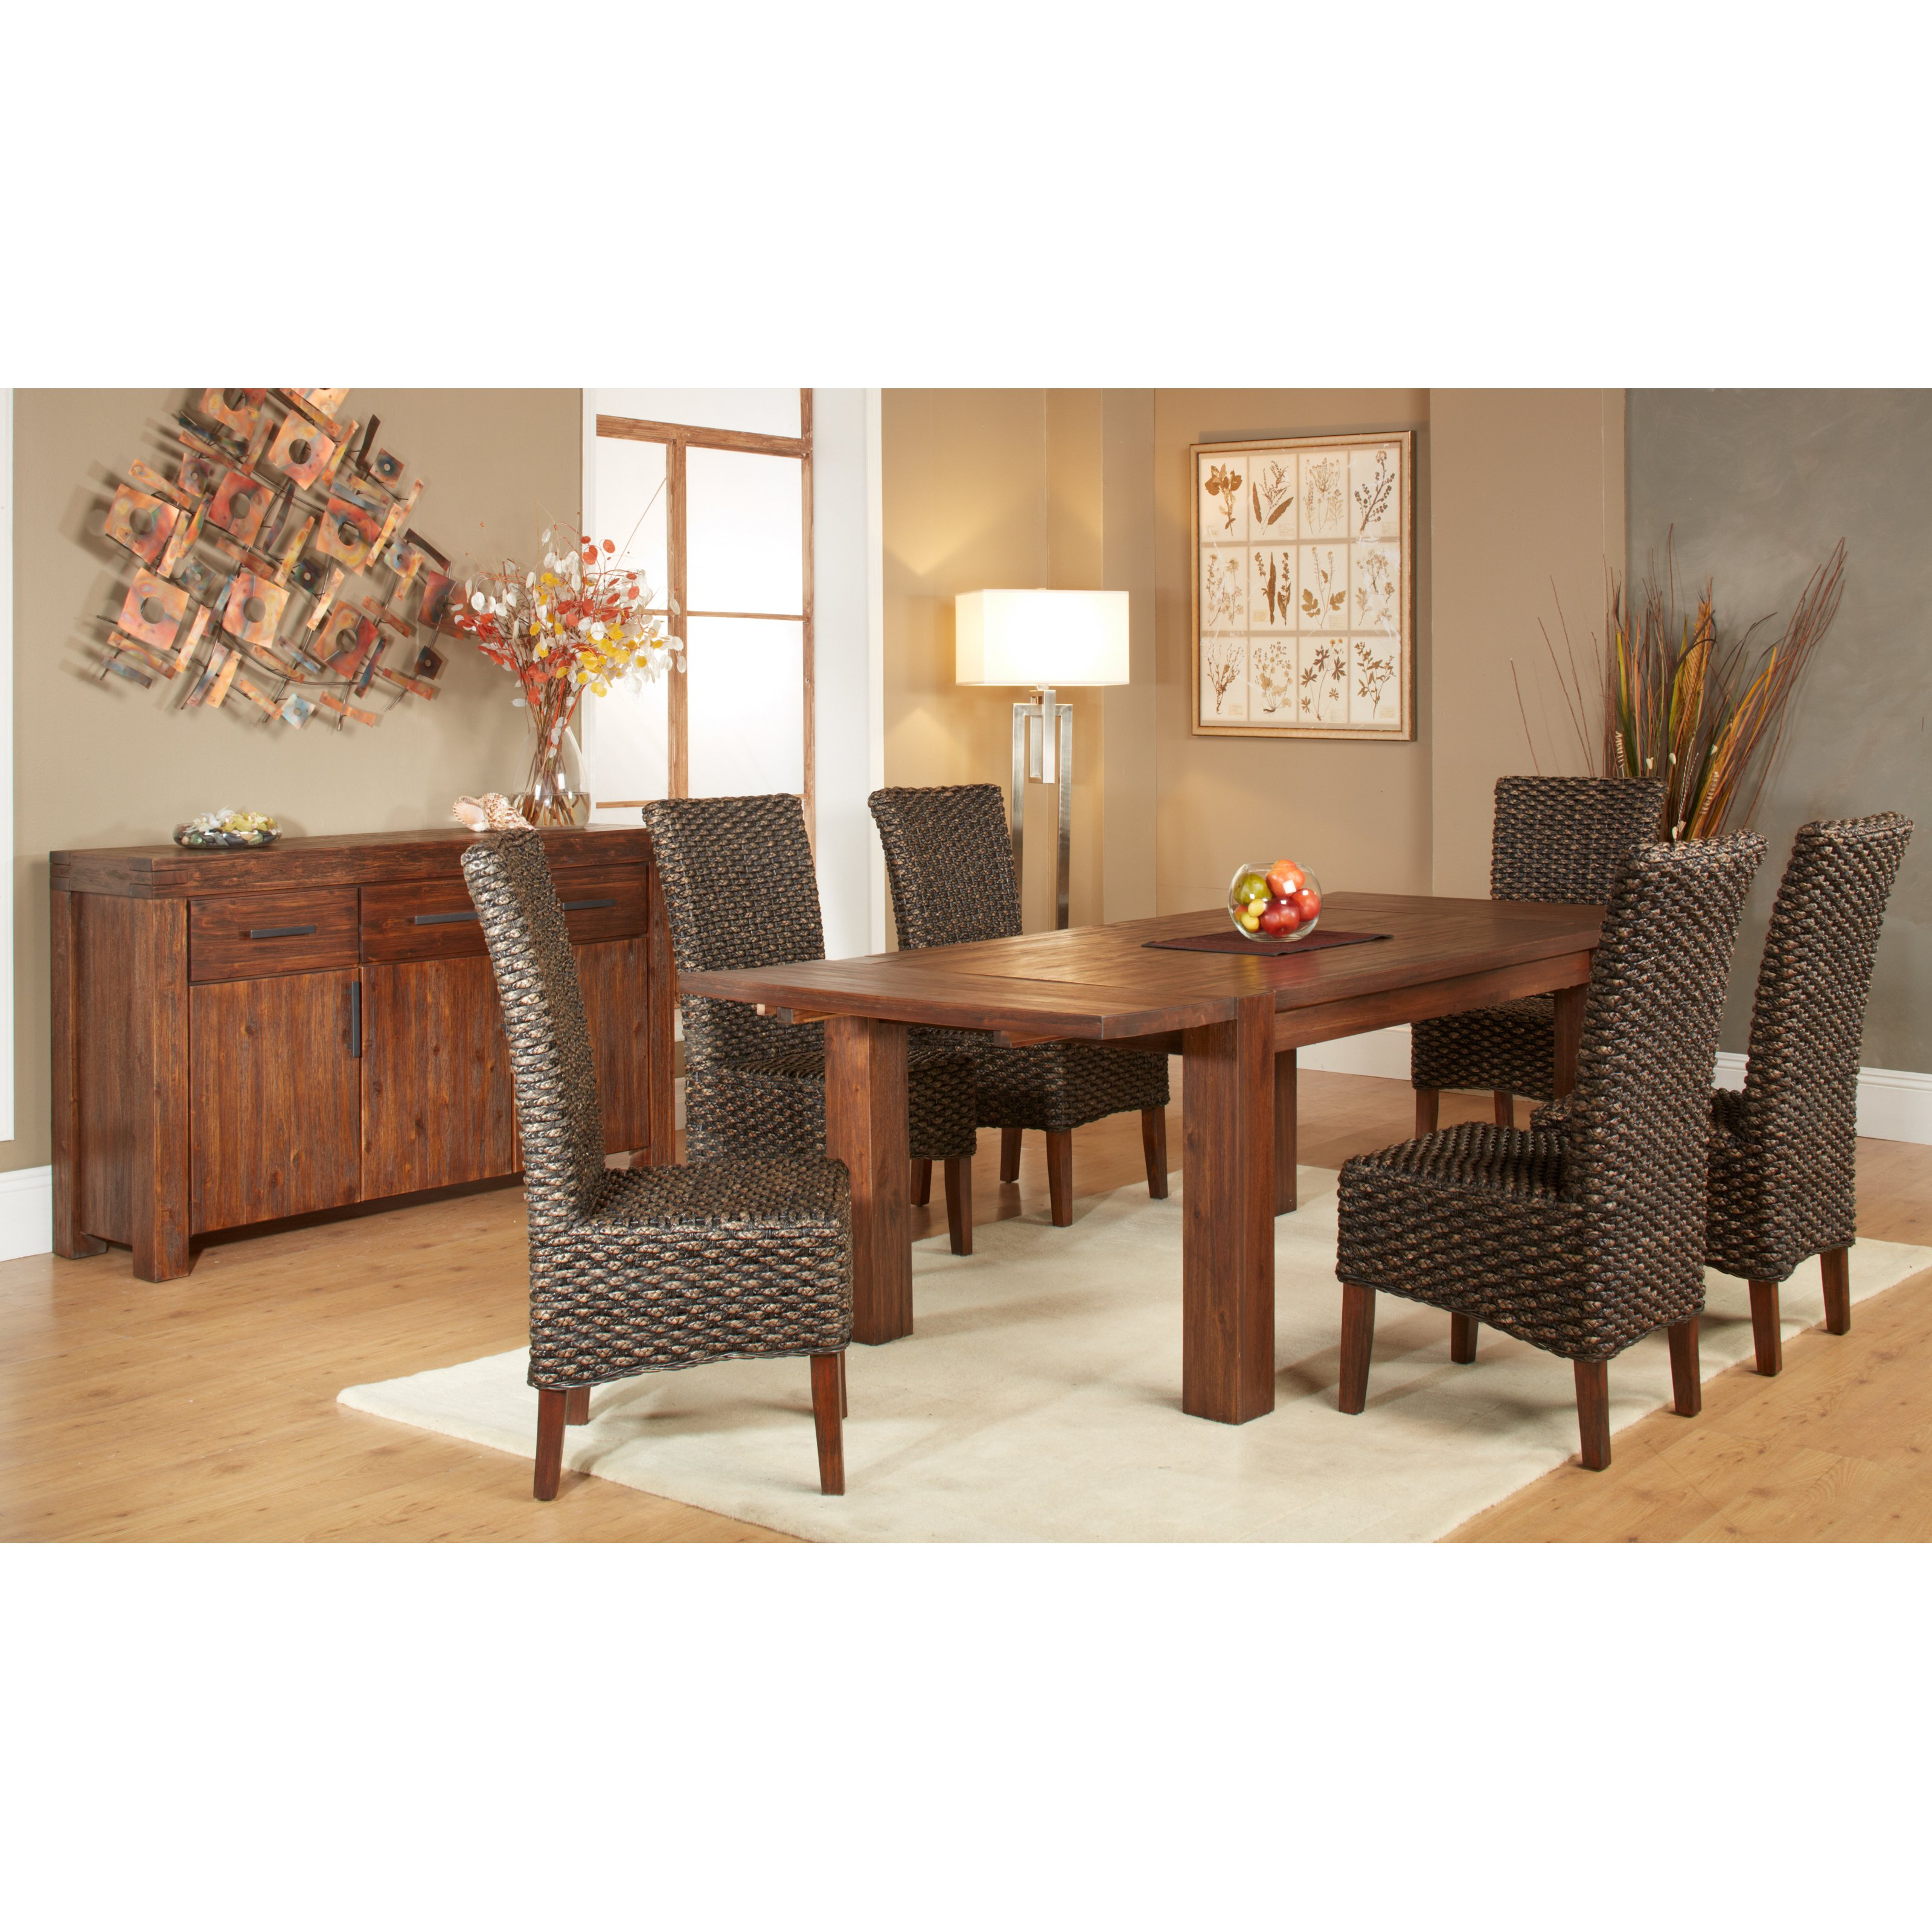 Modus 7 Piece Meadow Dining Table Set by Modus Furniture International